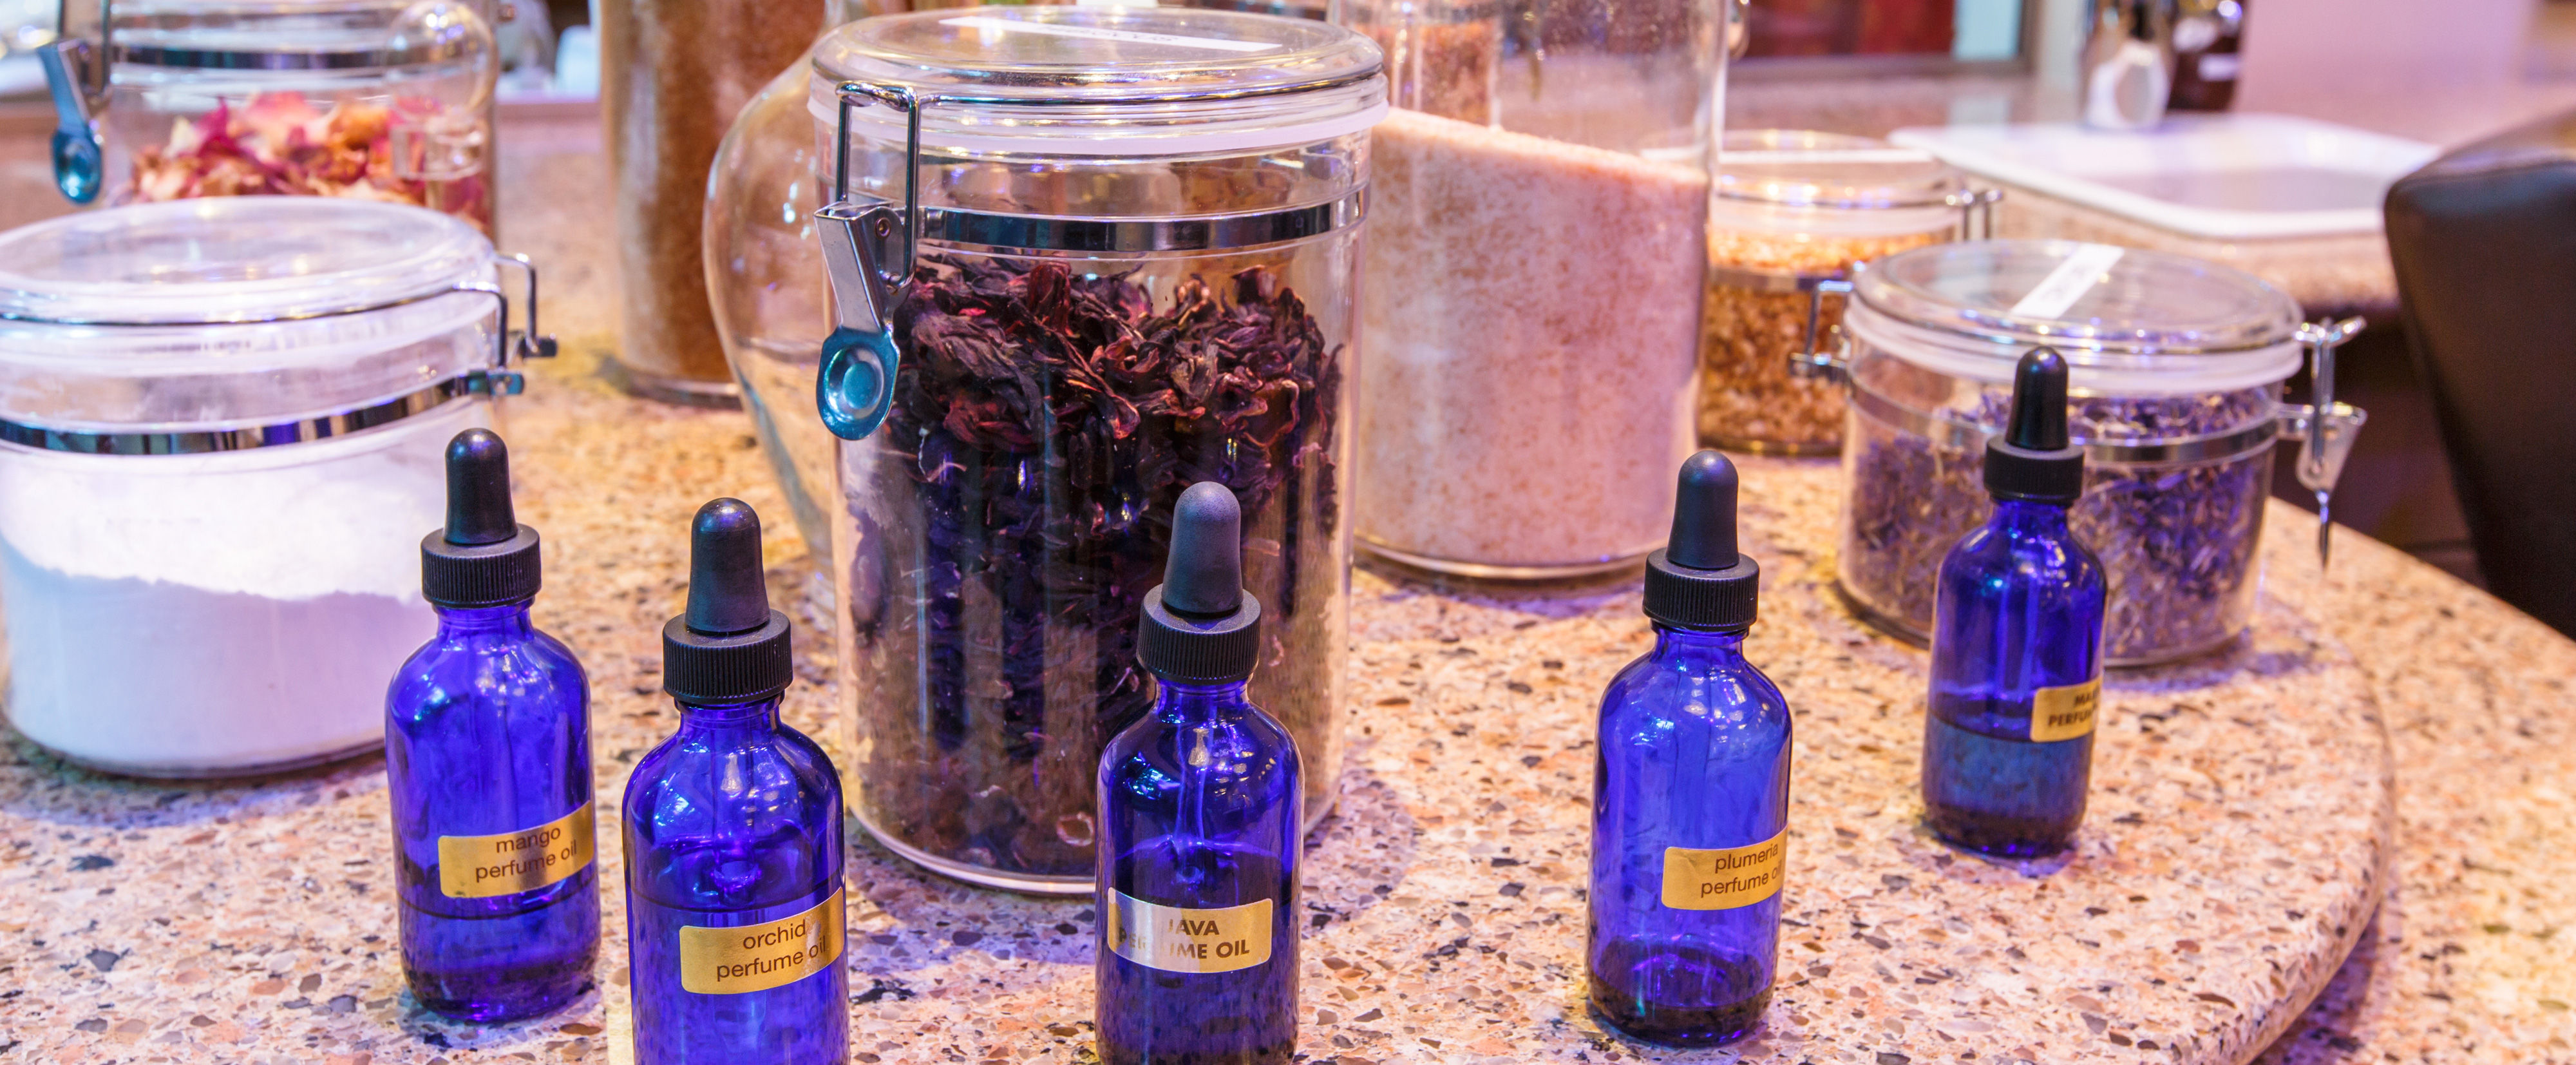 Cobalt dropper bottles filled with essential oils on a granite counter with canisters of dry ingredients